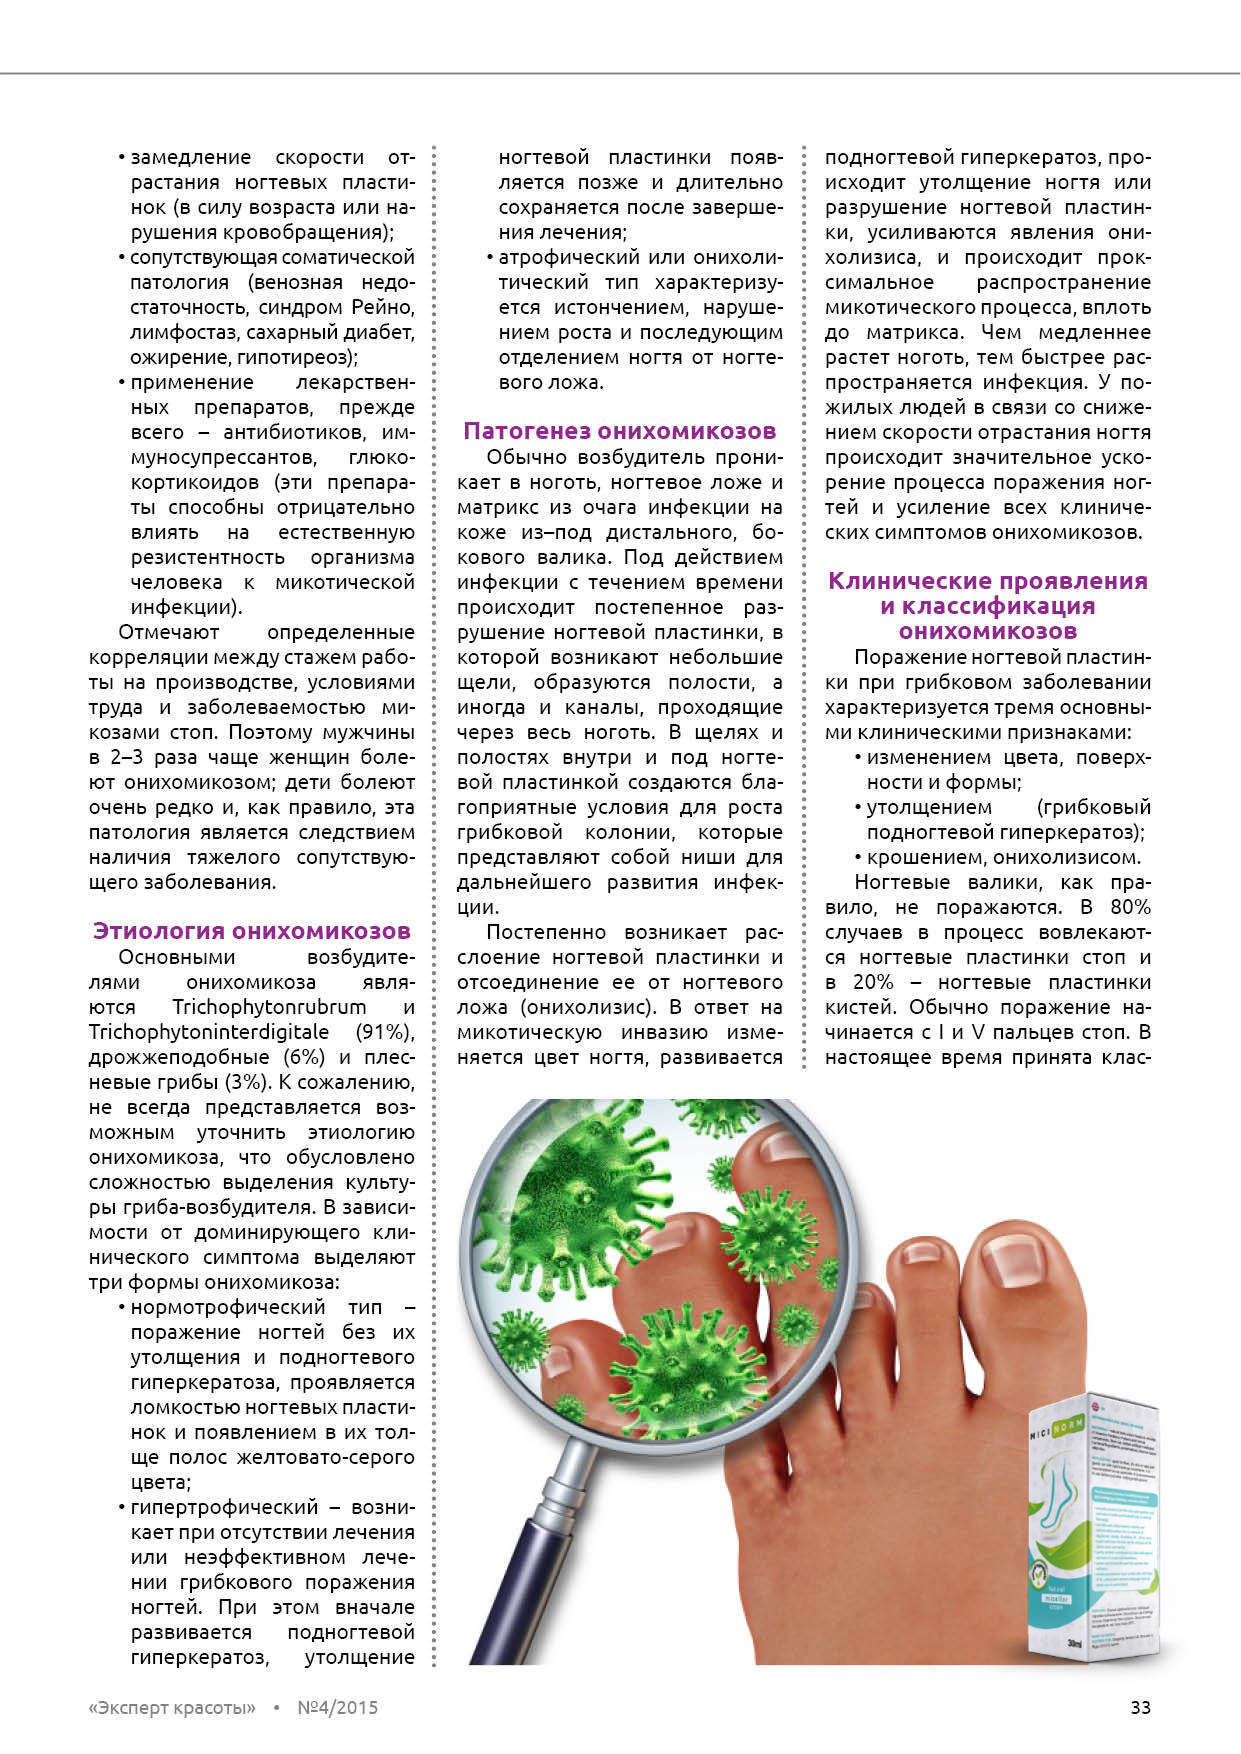 The pathogenesis of onychomycosis and clinical manifestations of fungal diseases